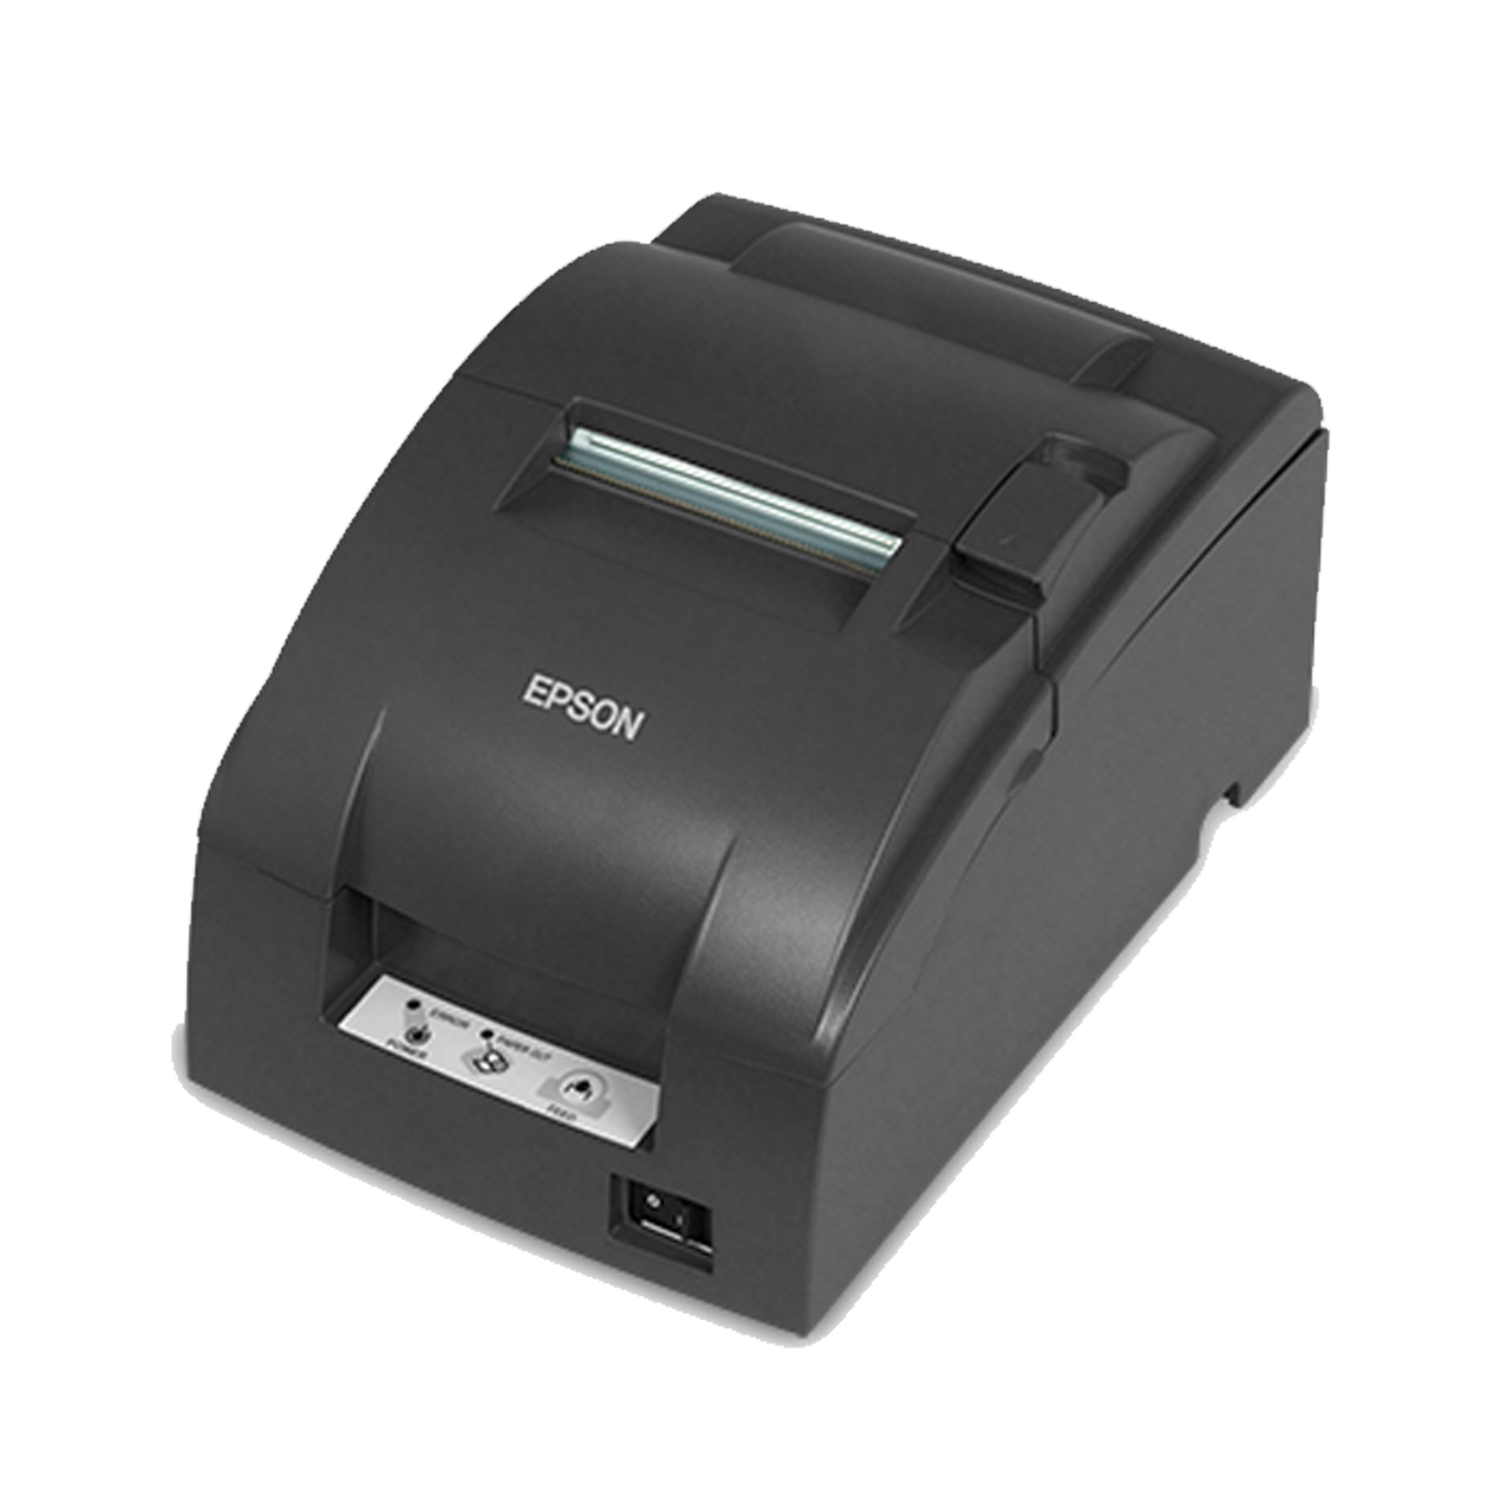 Meridian-POS-Equipment_0000_Layer-4.png